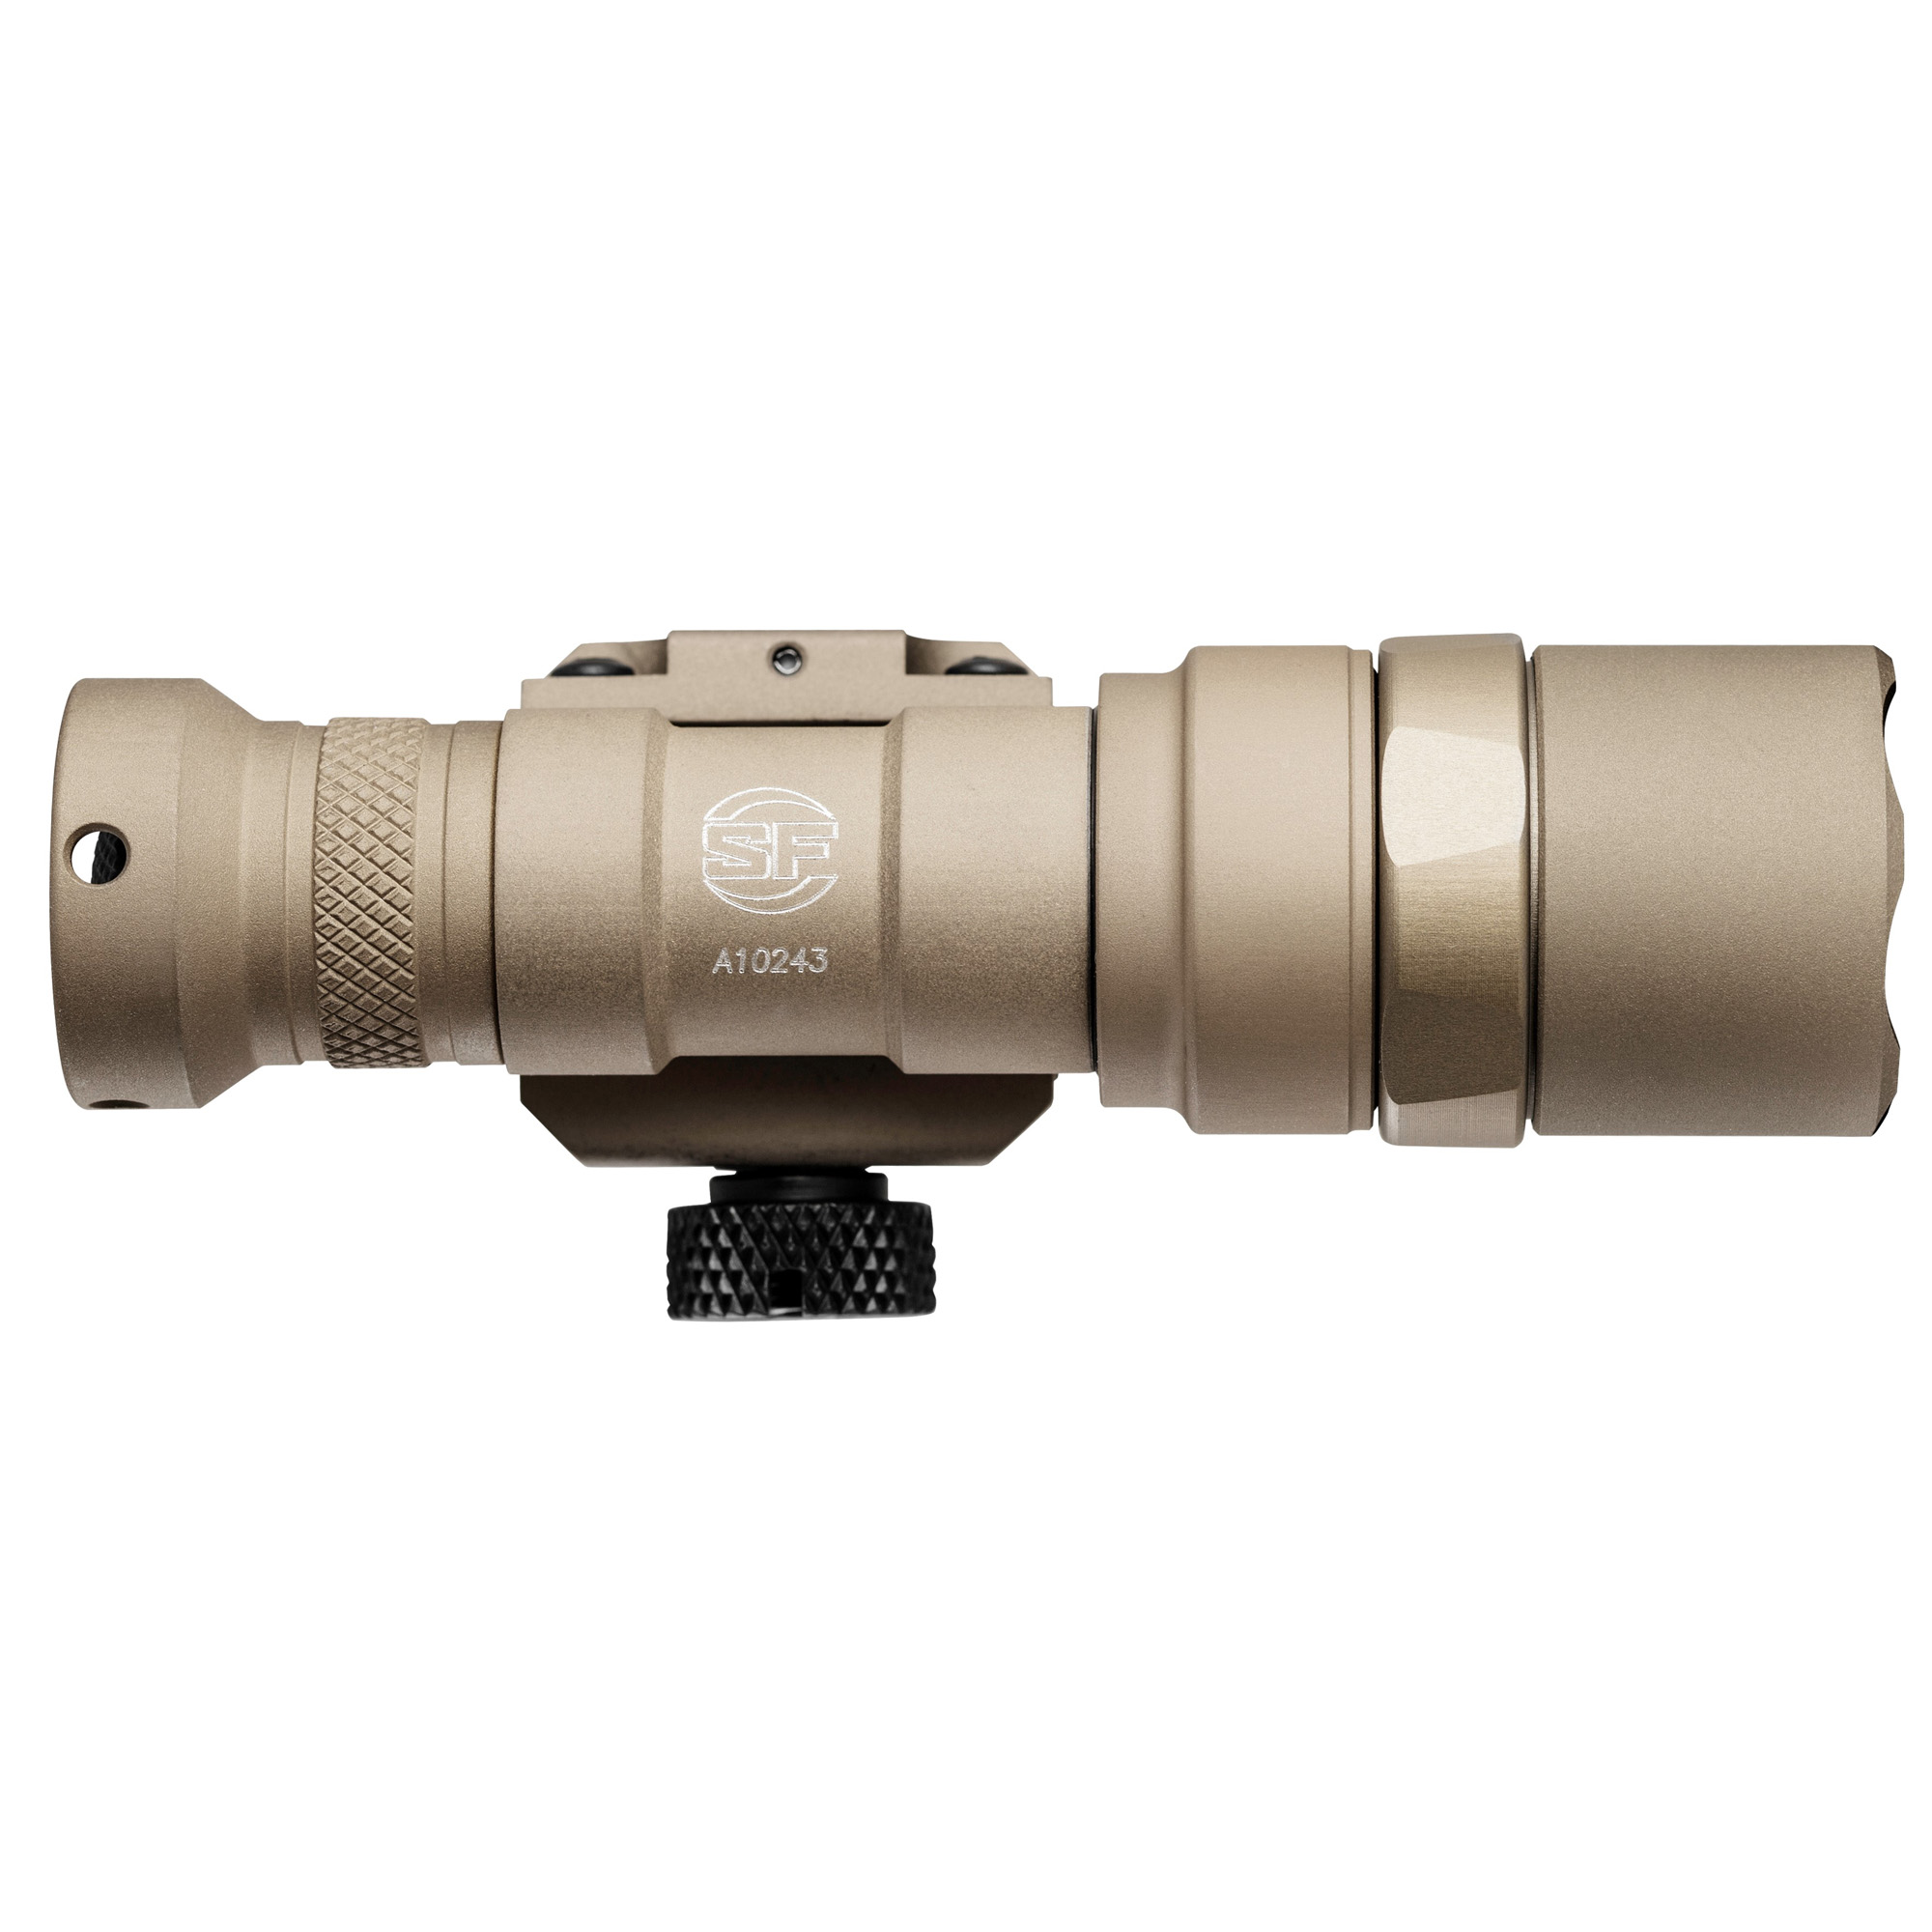 """The M300 Mini Scout is a powerful"""" lightweight weapon-mounted light-powered by a single 123A lithium battery-that features a virtually indestructible LED"""" which generates 500 lumens of light focused by a TIR lens into a high-intensity beam with plenty of reach for close- to mid-range operations. The rugged M300 easily and securely attaches to MIL-STD-1913 Picatinny rails via its integral thumbscrew clamp and is activated by clicking its pushbutton tail cap switch or pressing its pressure-activated tape switch"""" included on appropriate models. Machined from lightweight aerospace aluminum with a Mil-Spec hard anodized finish and O-ring sealed to keep out the elements"""" the ultra-compact M300 will withstand the rigors of combat without weighing down your weapon."""